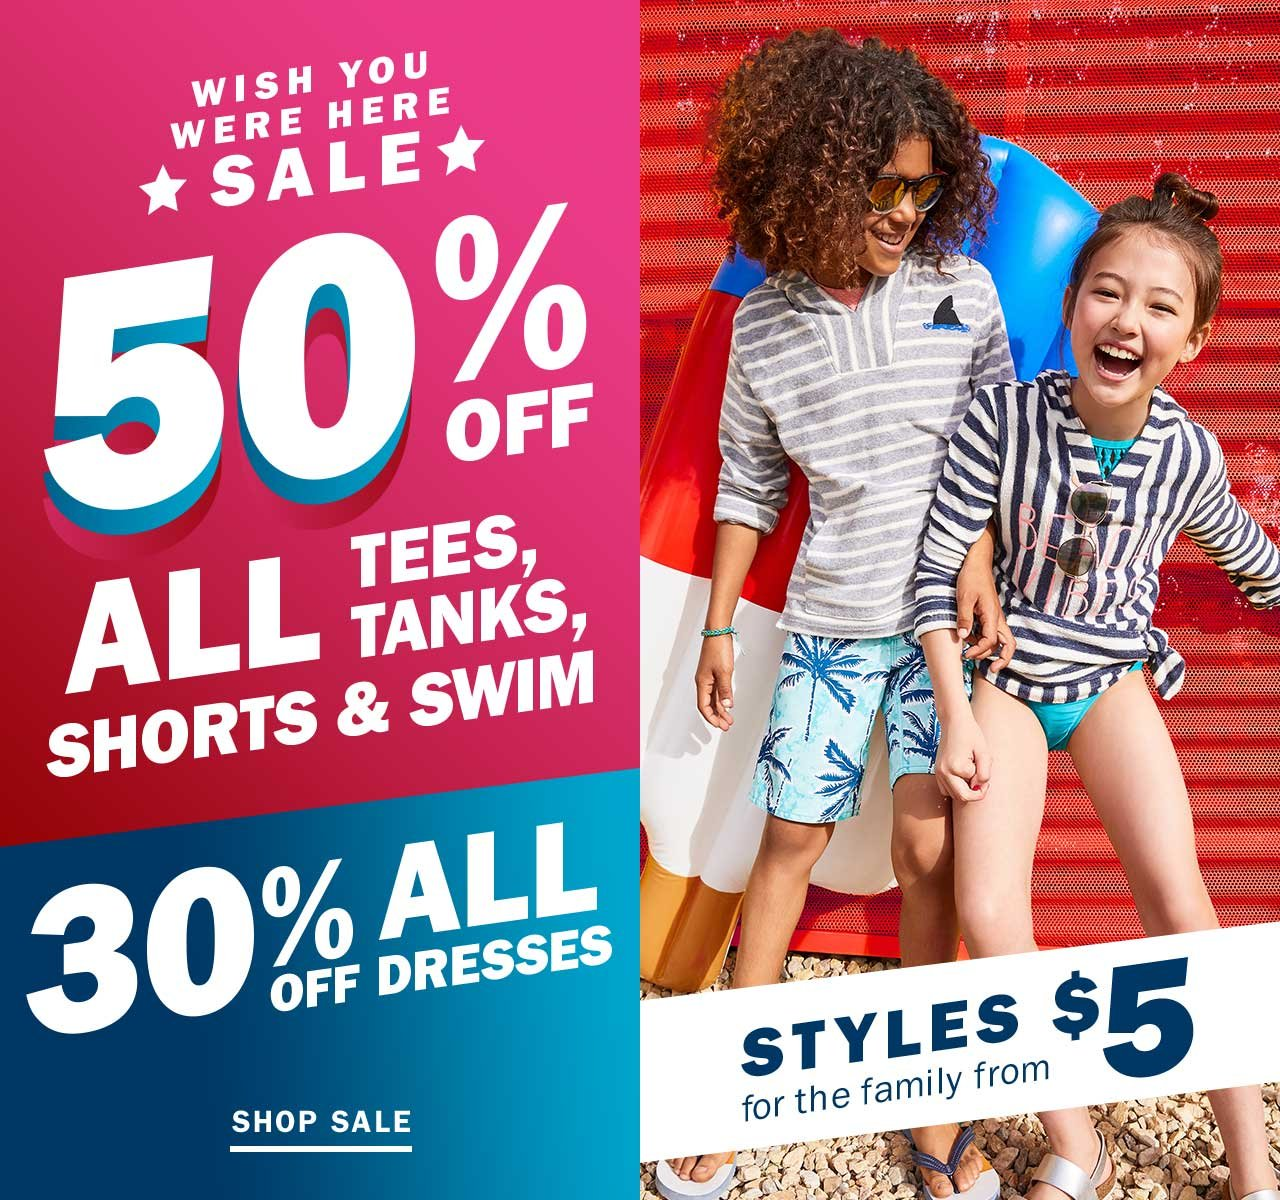 $7 SWIM *** - Old Navy Email Archive